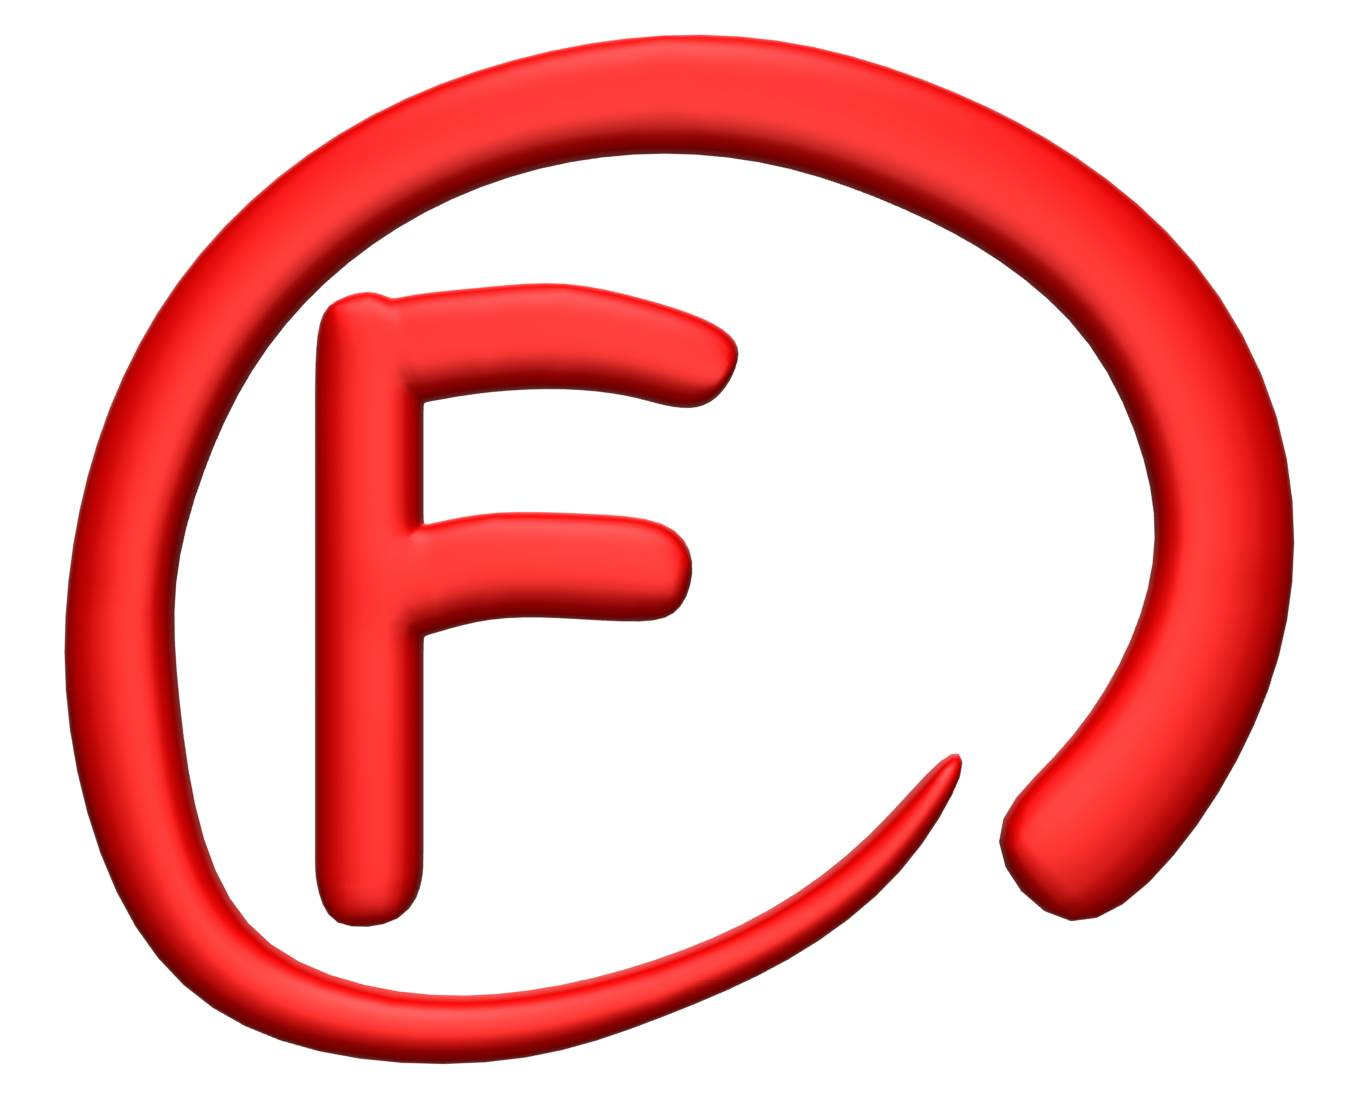 F is for Fail!